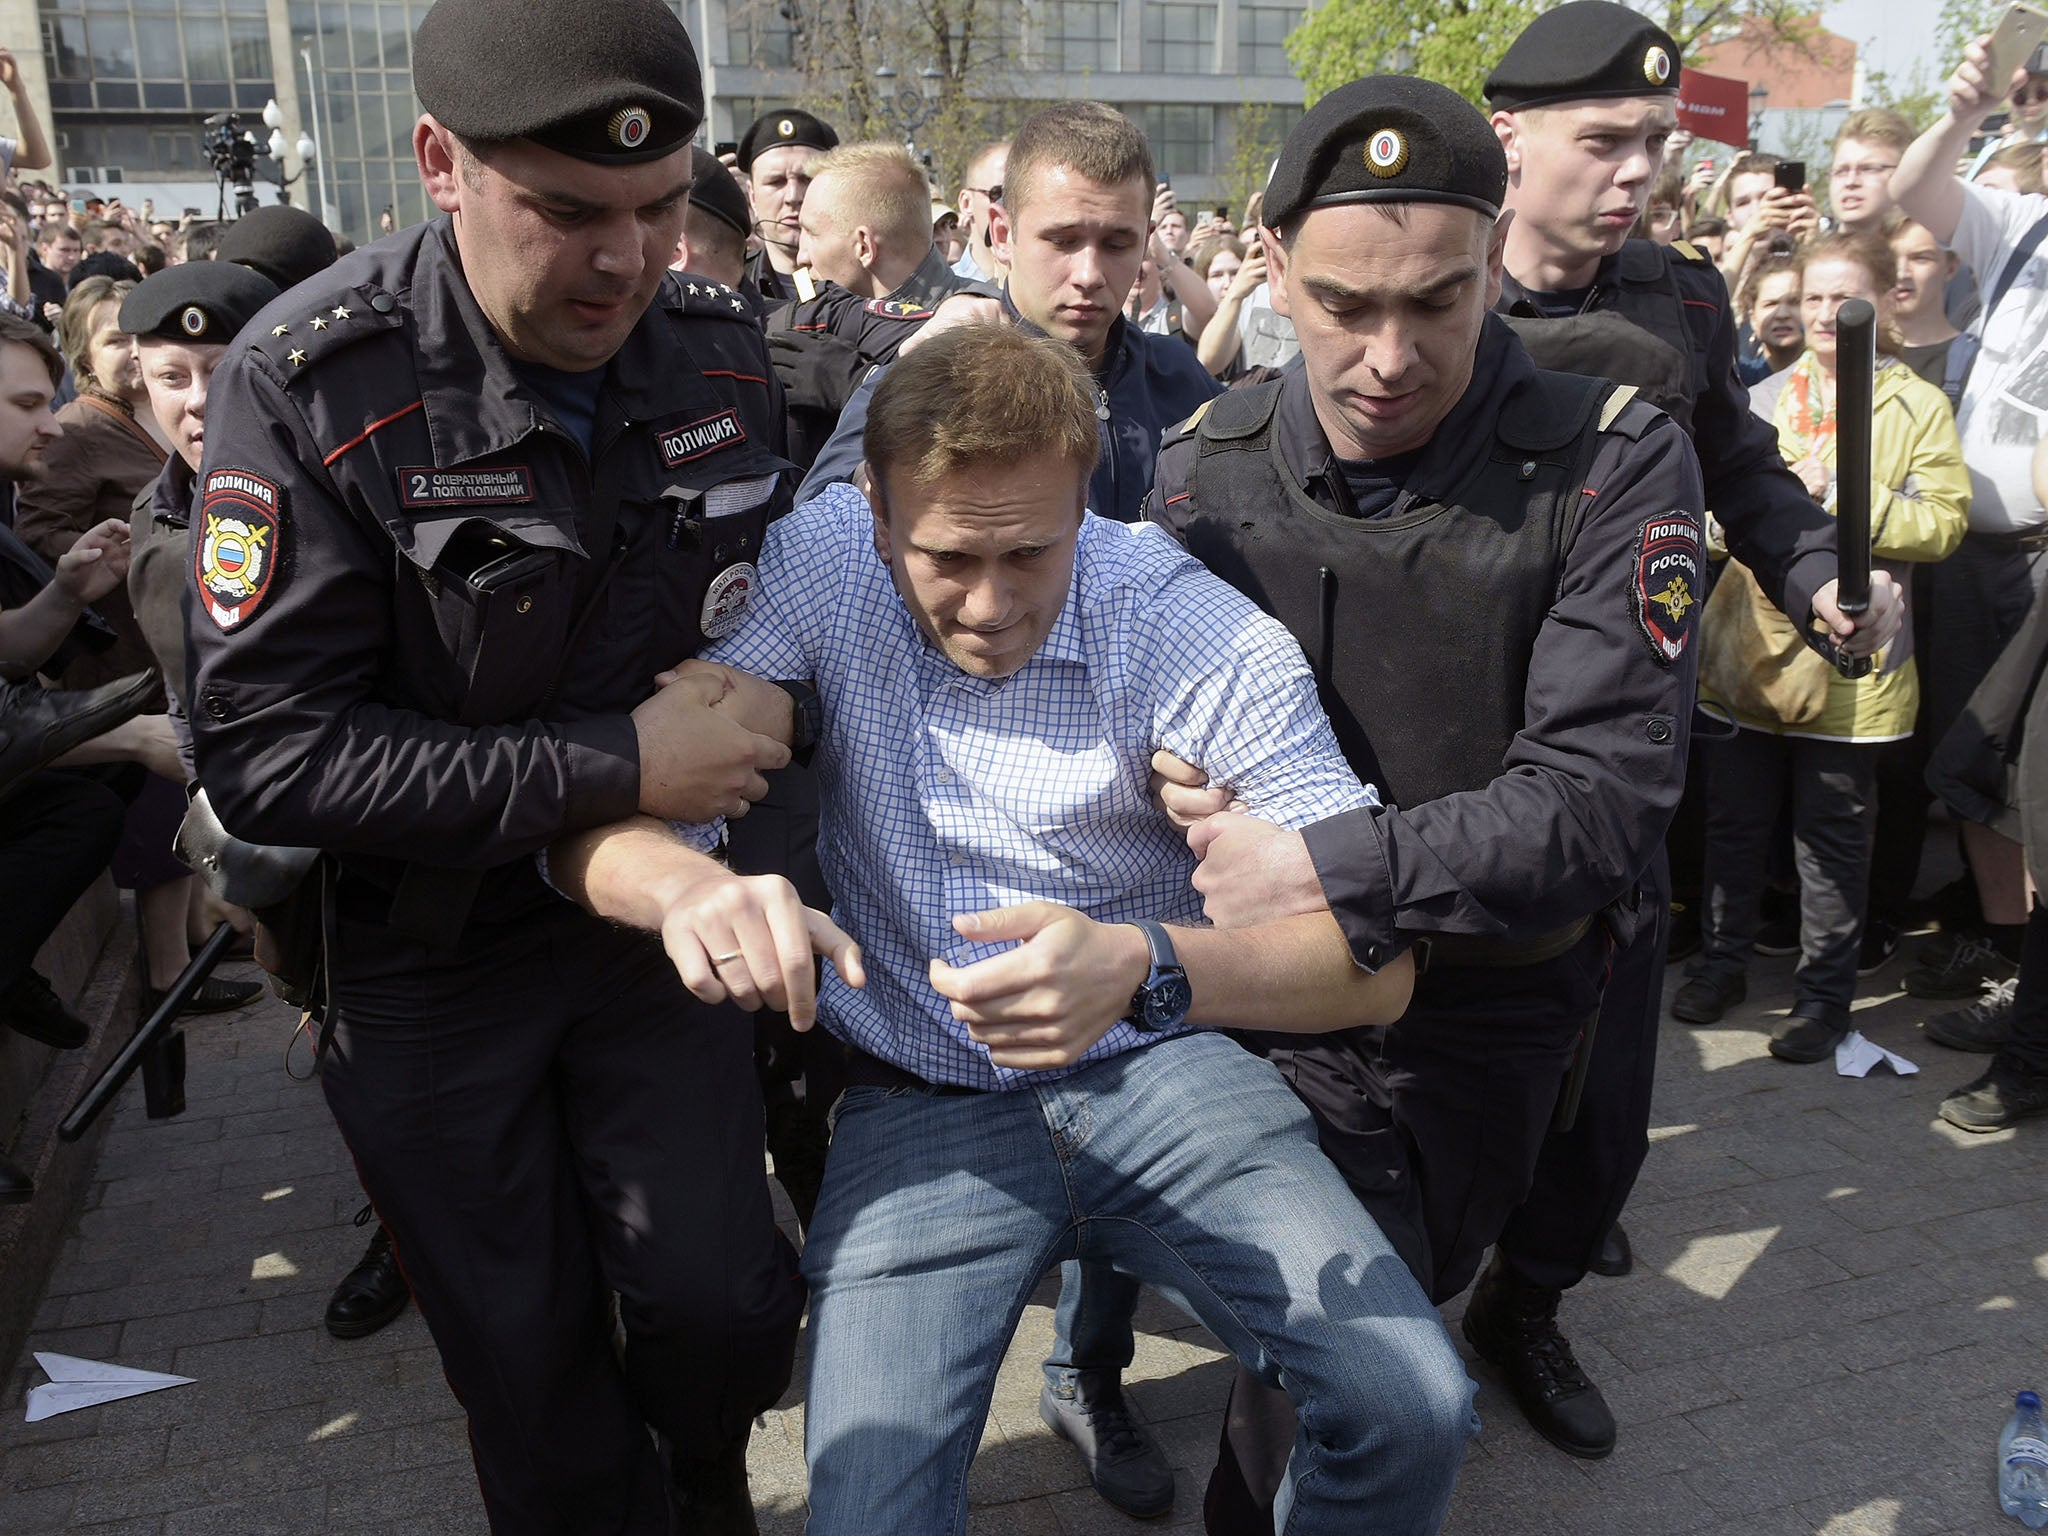 Key Putin opponent Alexei Navalny among hundreds arrested in violent clashes with Russian police